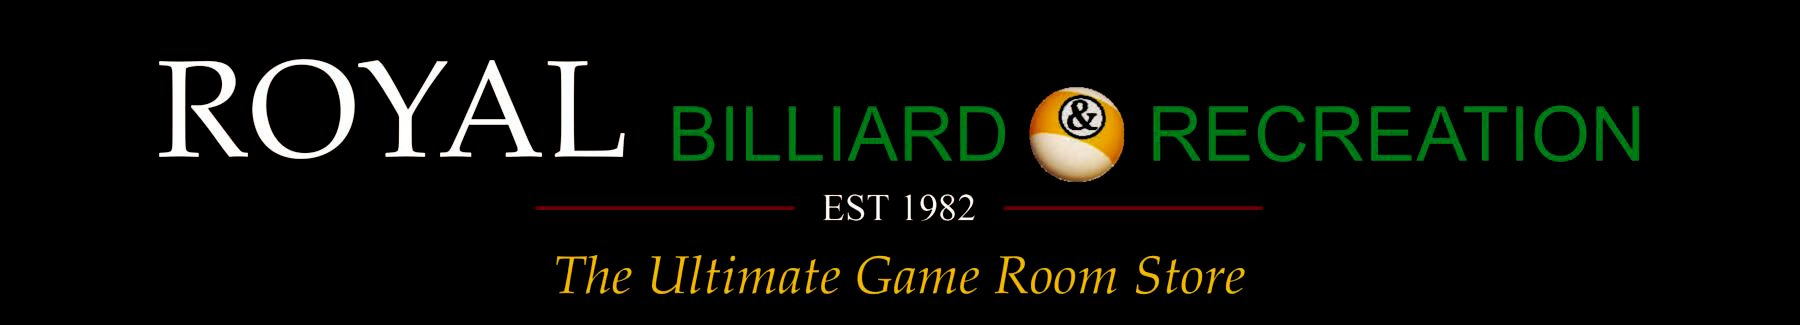 Royal Billiard & Recreation Logo